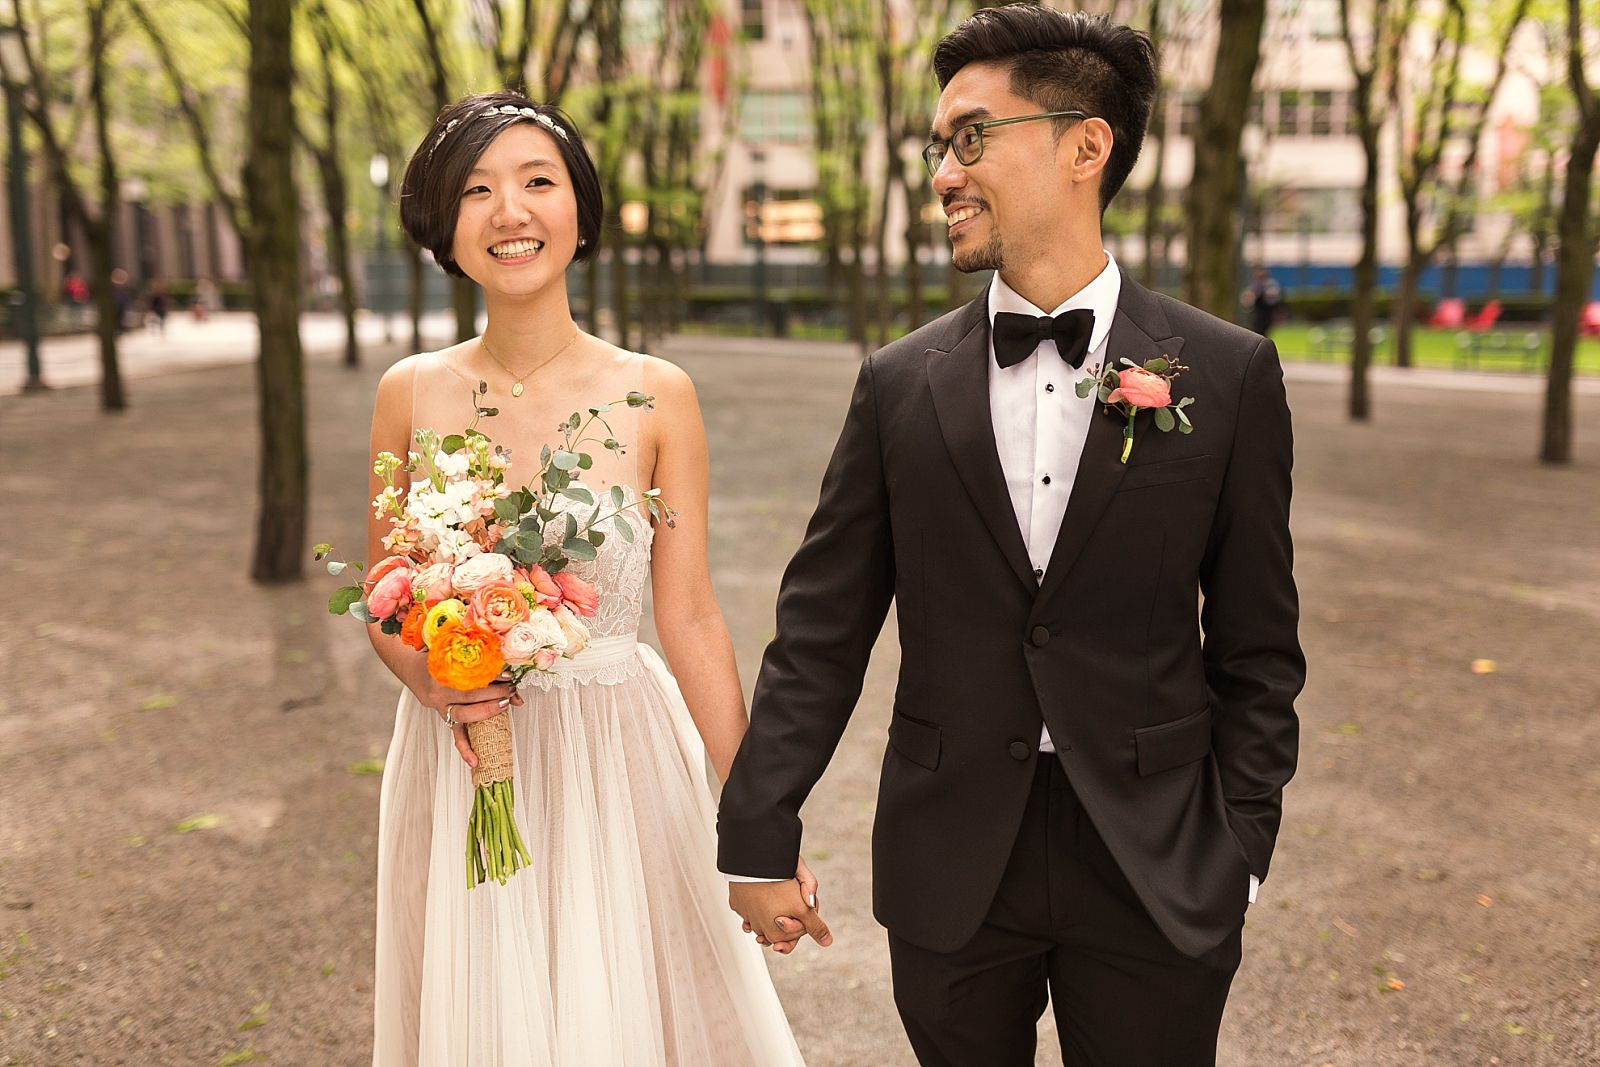 NYC_Wedding_Photographer_JeNi_Wed_32.jpg